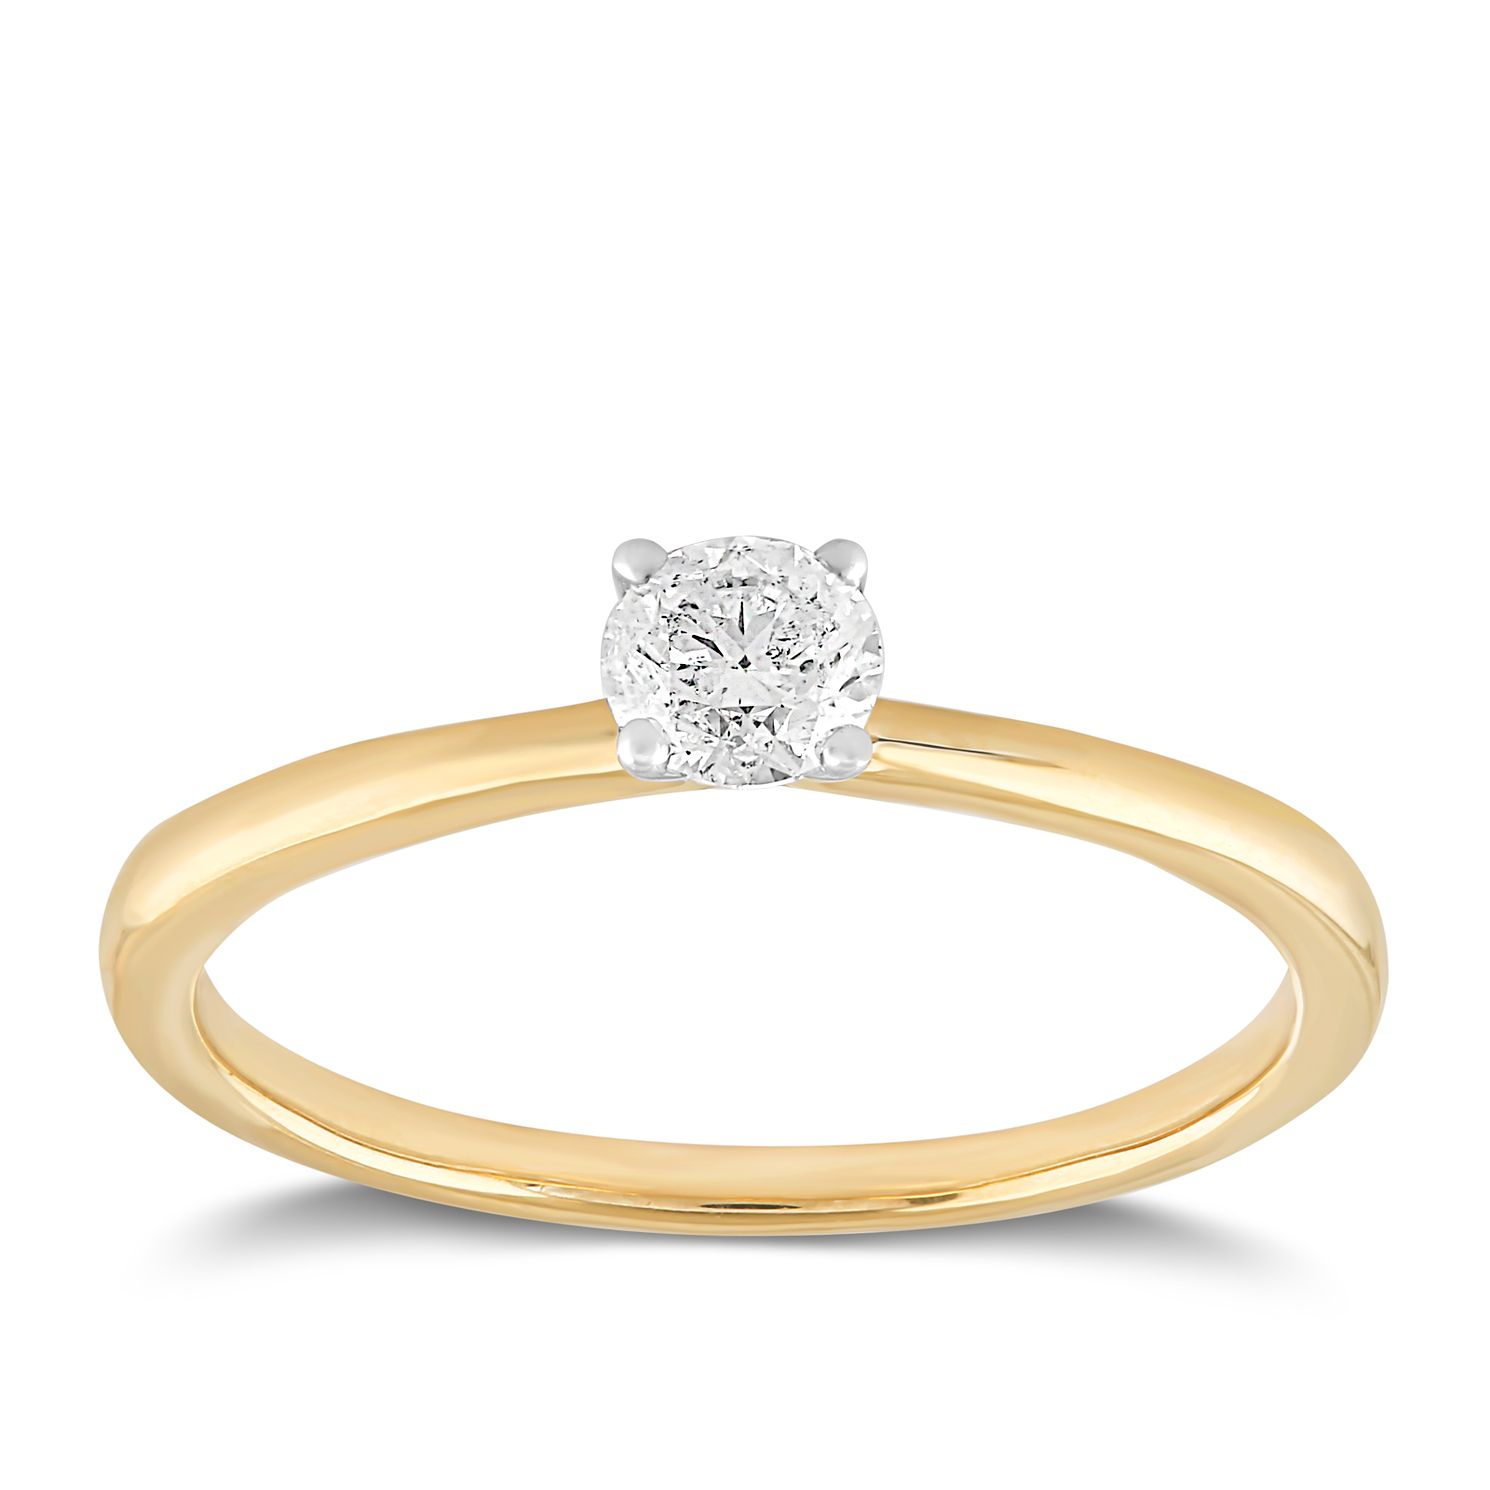 18ct Yellow Gold 1/4ct Claw Set Solitaire Diamond Ring - Product number 2356686